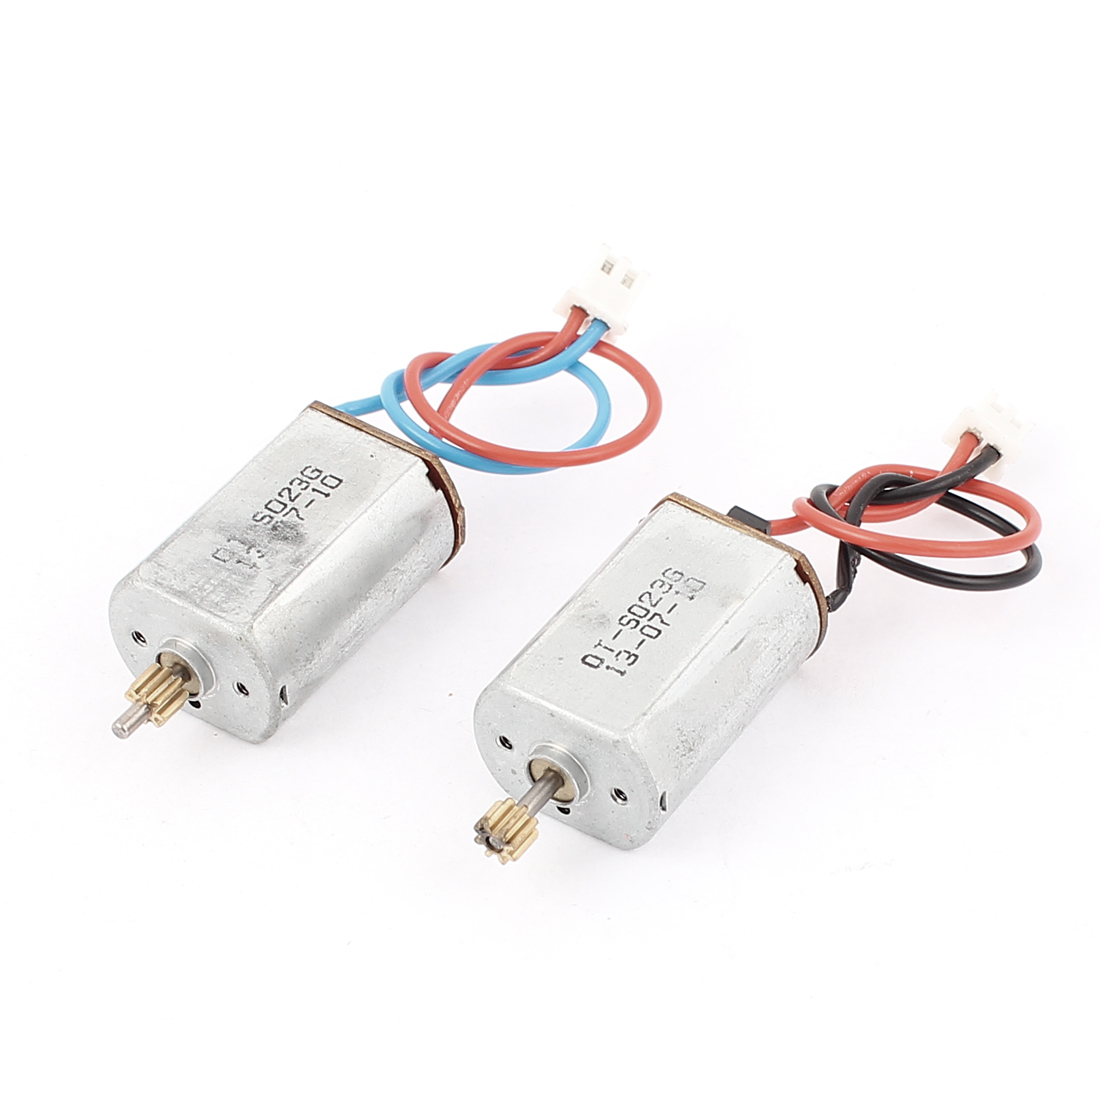 DC 7.4V 38500RPM RC Helicopter Replacement Parts Electric Main Motor 2pcs